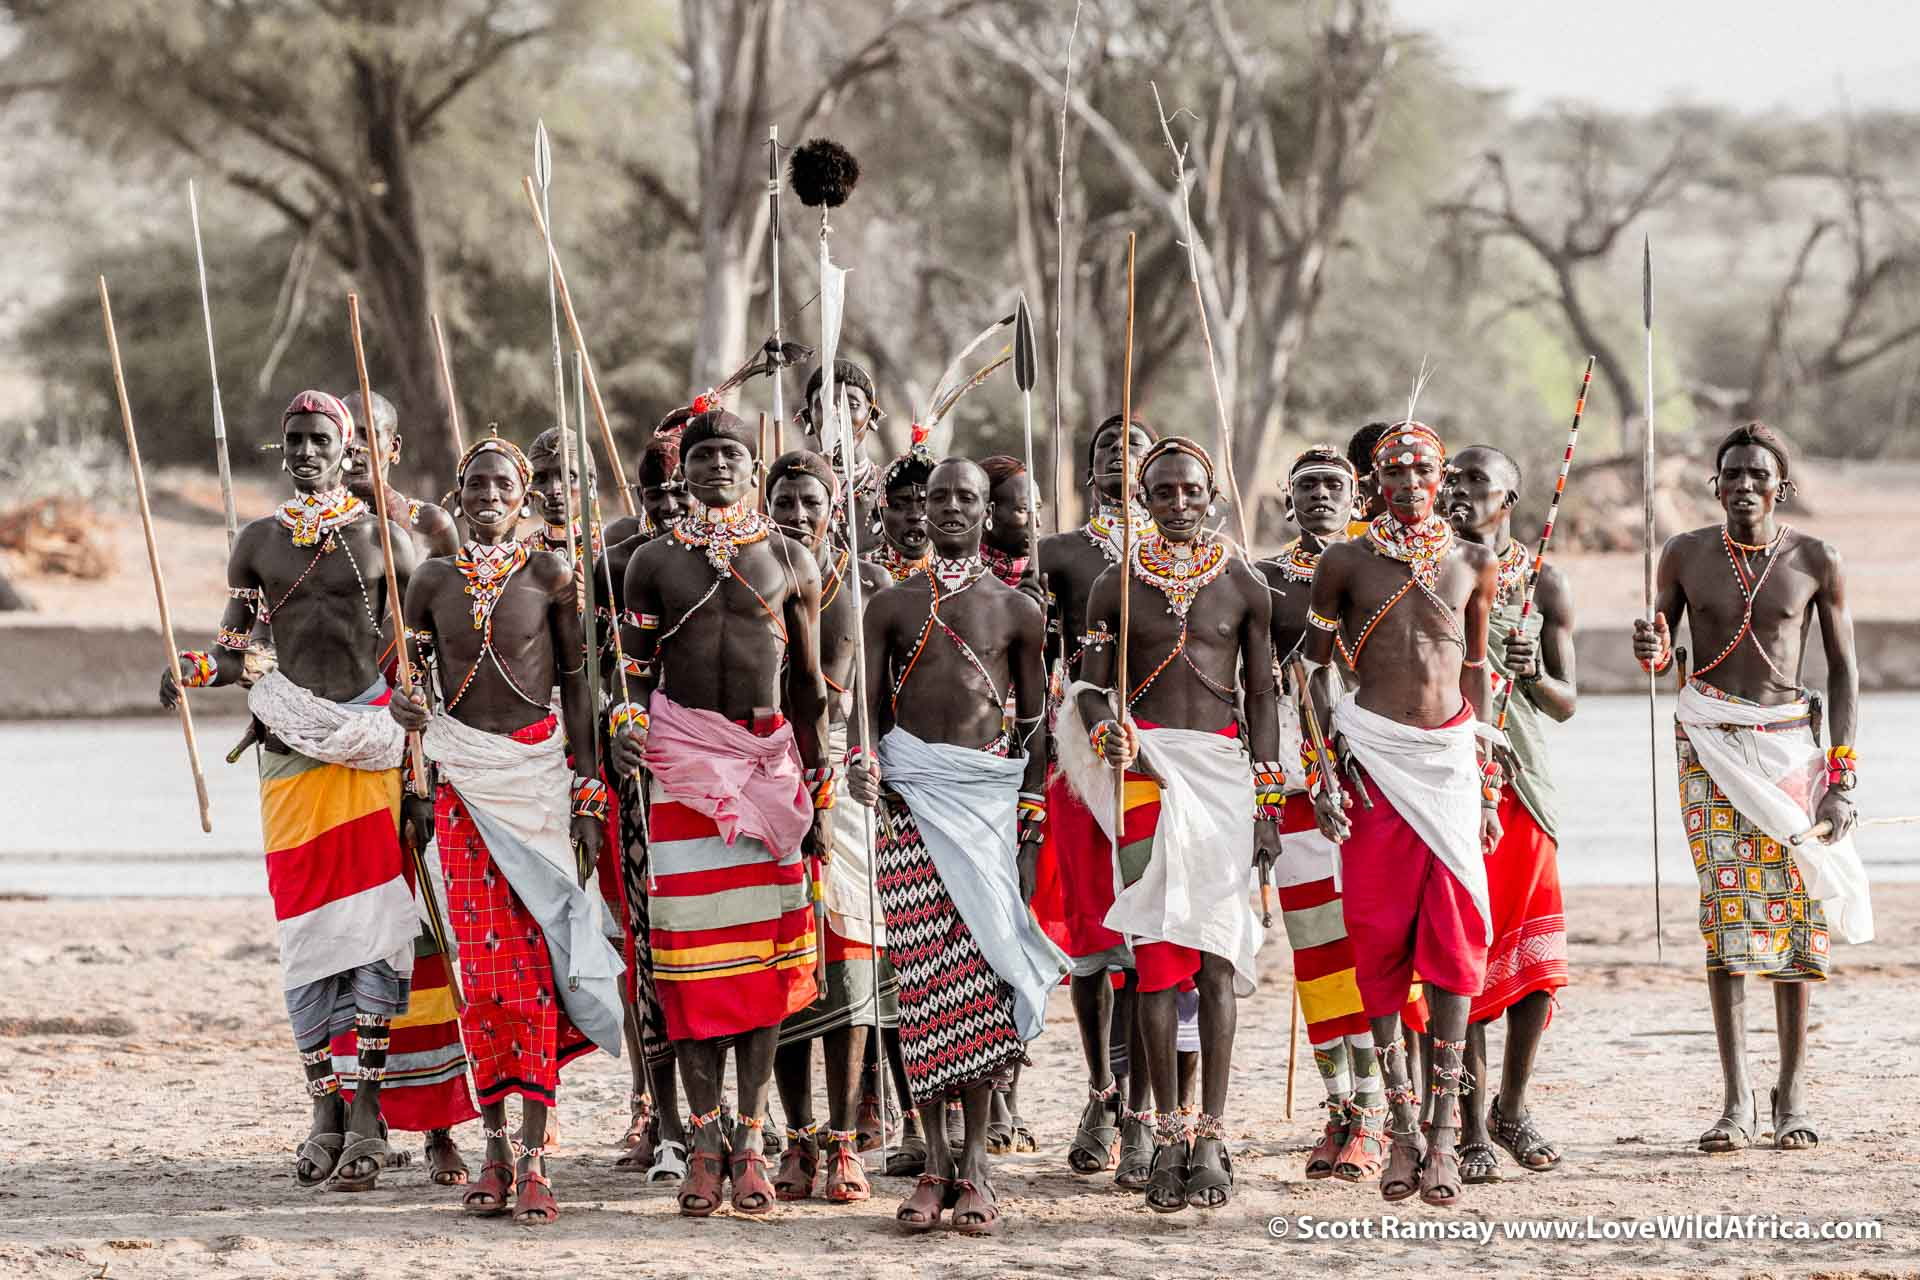 "One of the impressive opportunities for guests at Sasaab is to witness a Samburu moran dance, where the warriors dance and chant for the young women. Sometimes these sorts of ""cultural interactions"" between local people and tourists can seem cheesy and contrived, but the Samburu are mostly oblivious to anyone watching them, and the whole occasion feels authentic."